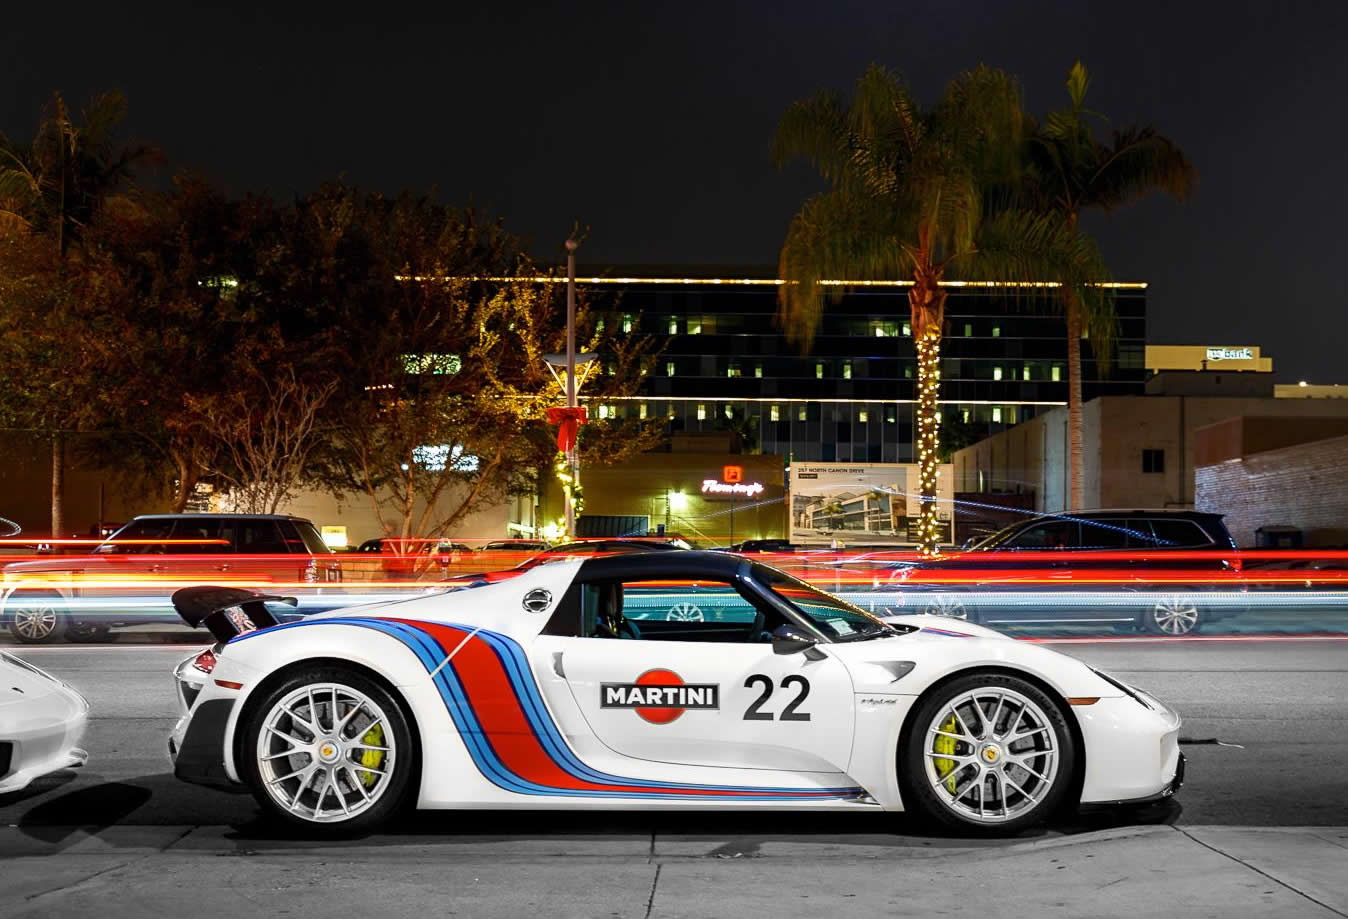 2015 porsche 918 spyder weissach martini racing side. Black Bedroom Furniture Sets. Home Design Ideas